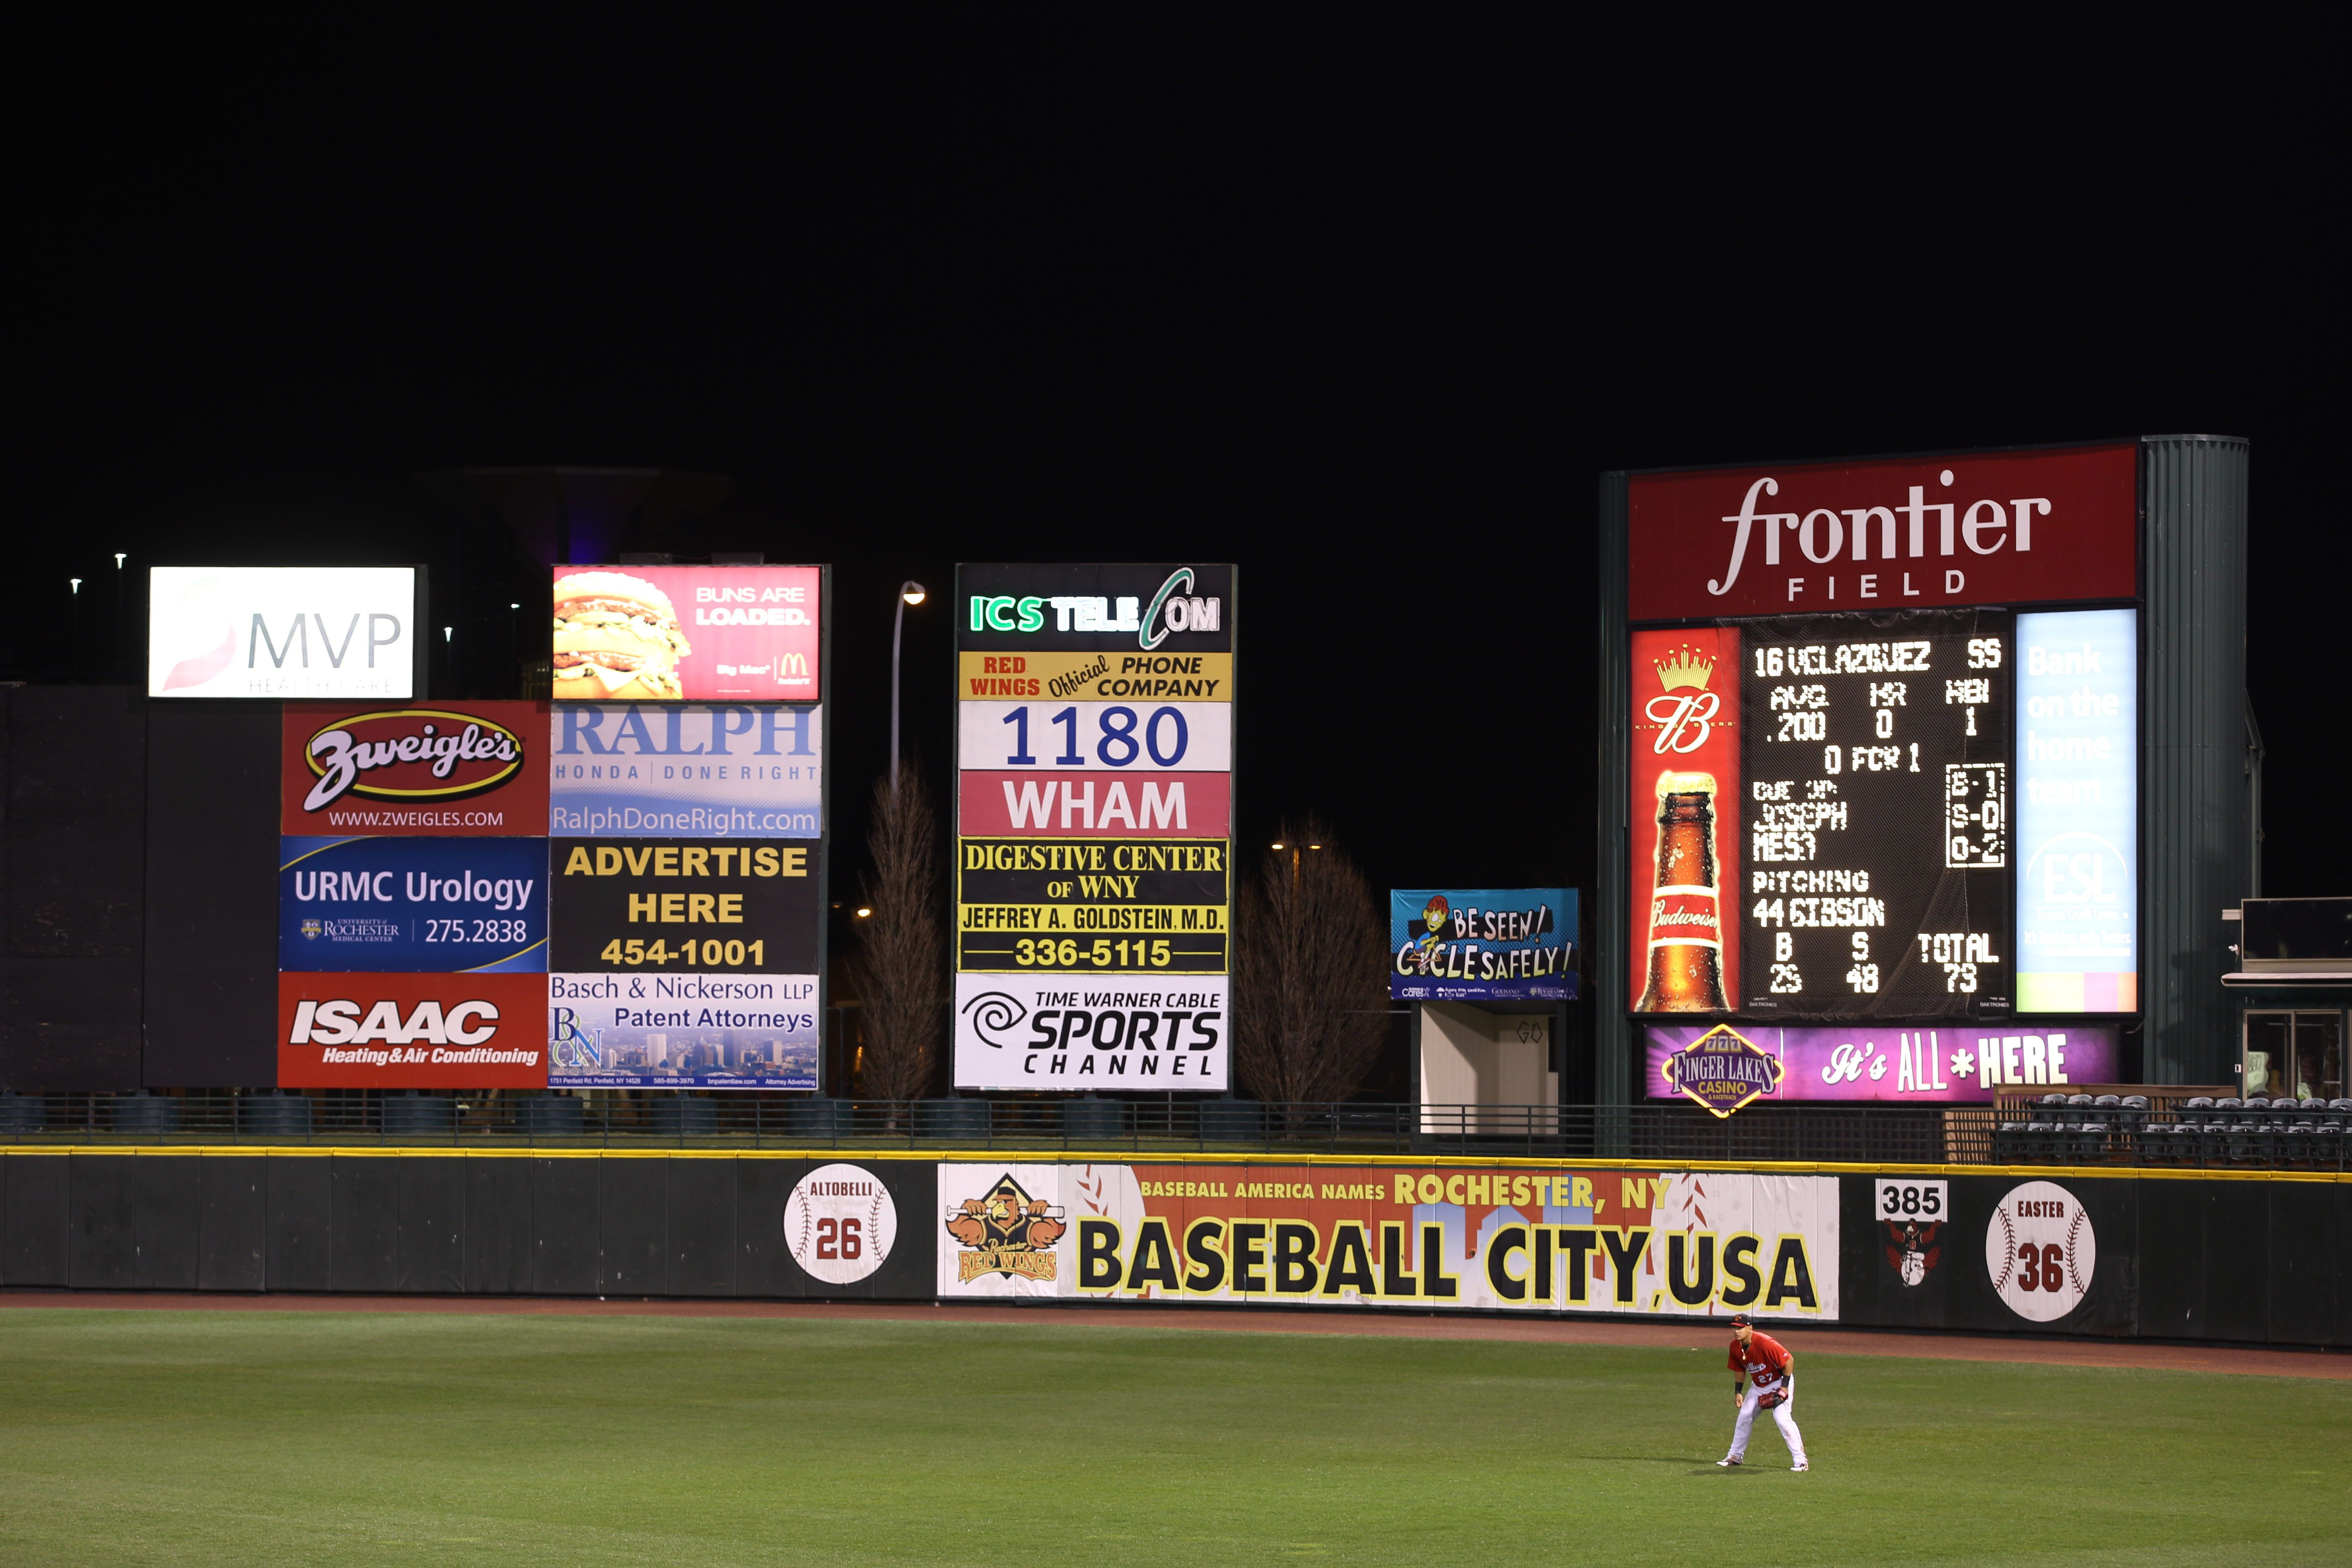 Rochester Red Wings Play at Frontier Field